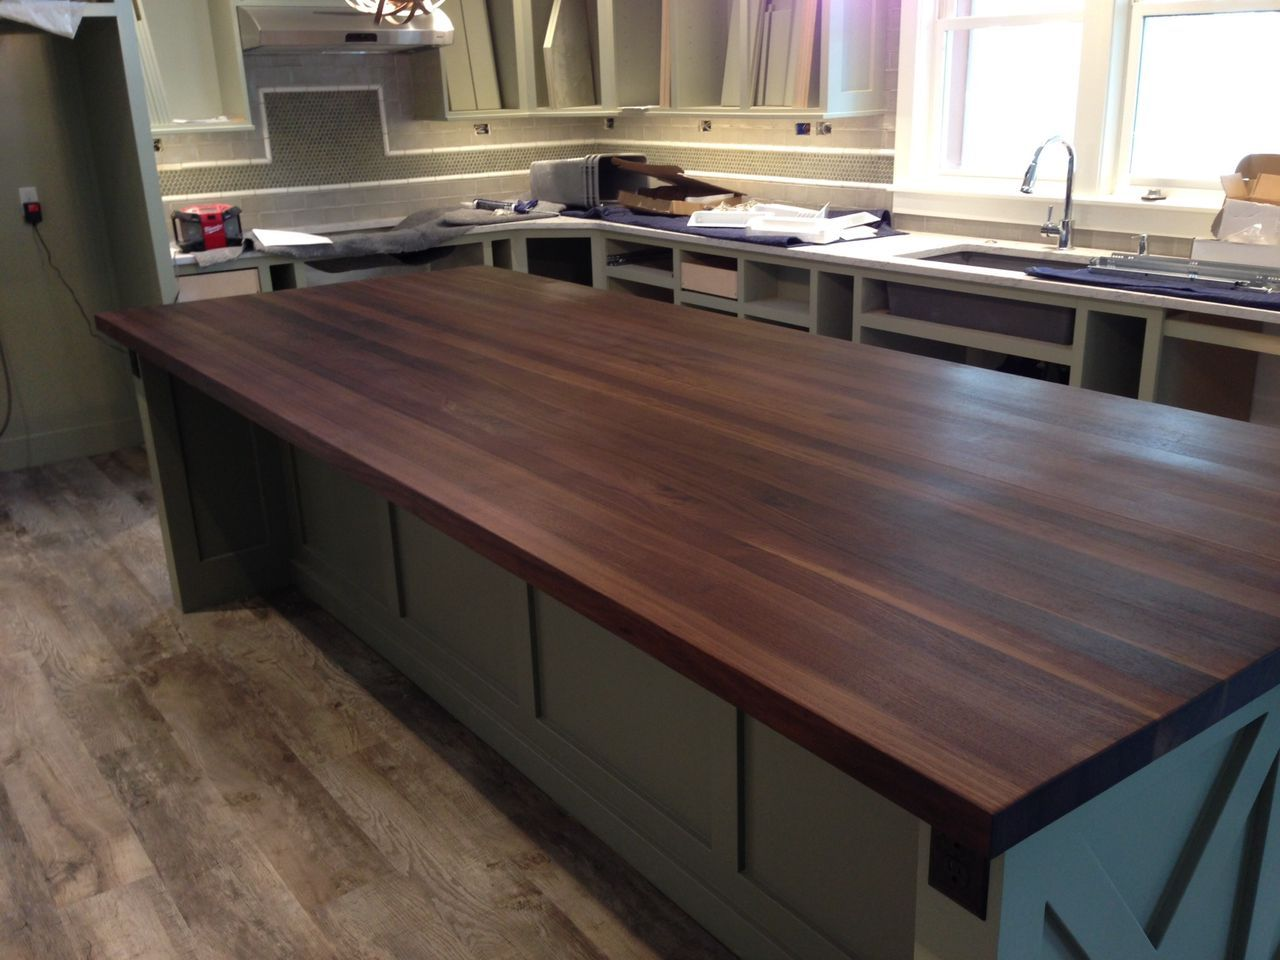 White Kitchen With Walnut Butcher Block Countertop : Custom-made walnut butcher block island top by #McClureTables #MadeInMichigan #MadeInAmerica ...